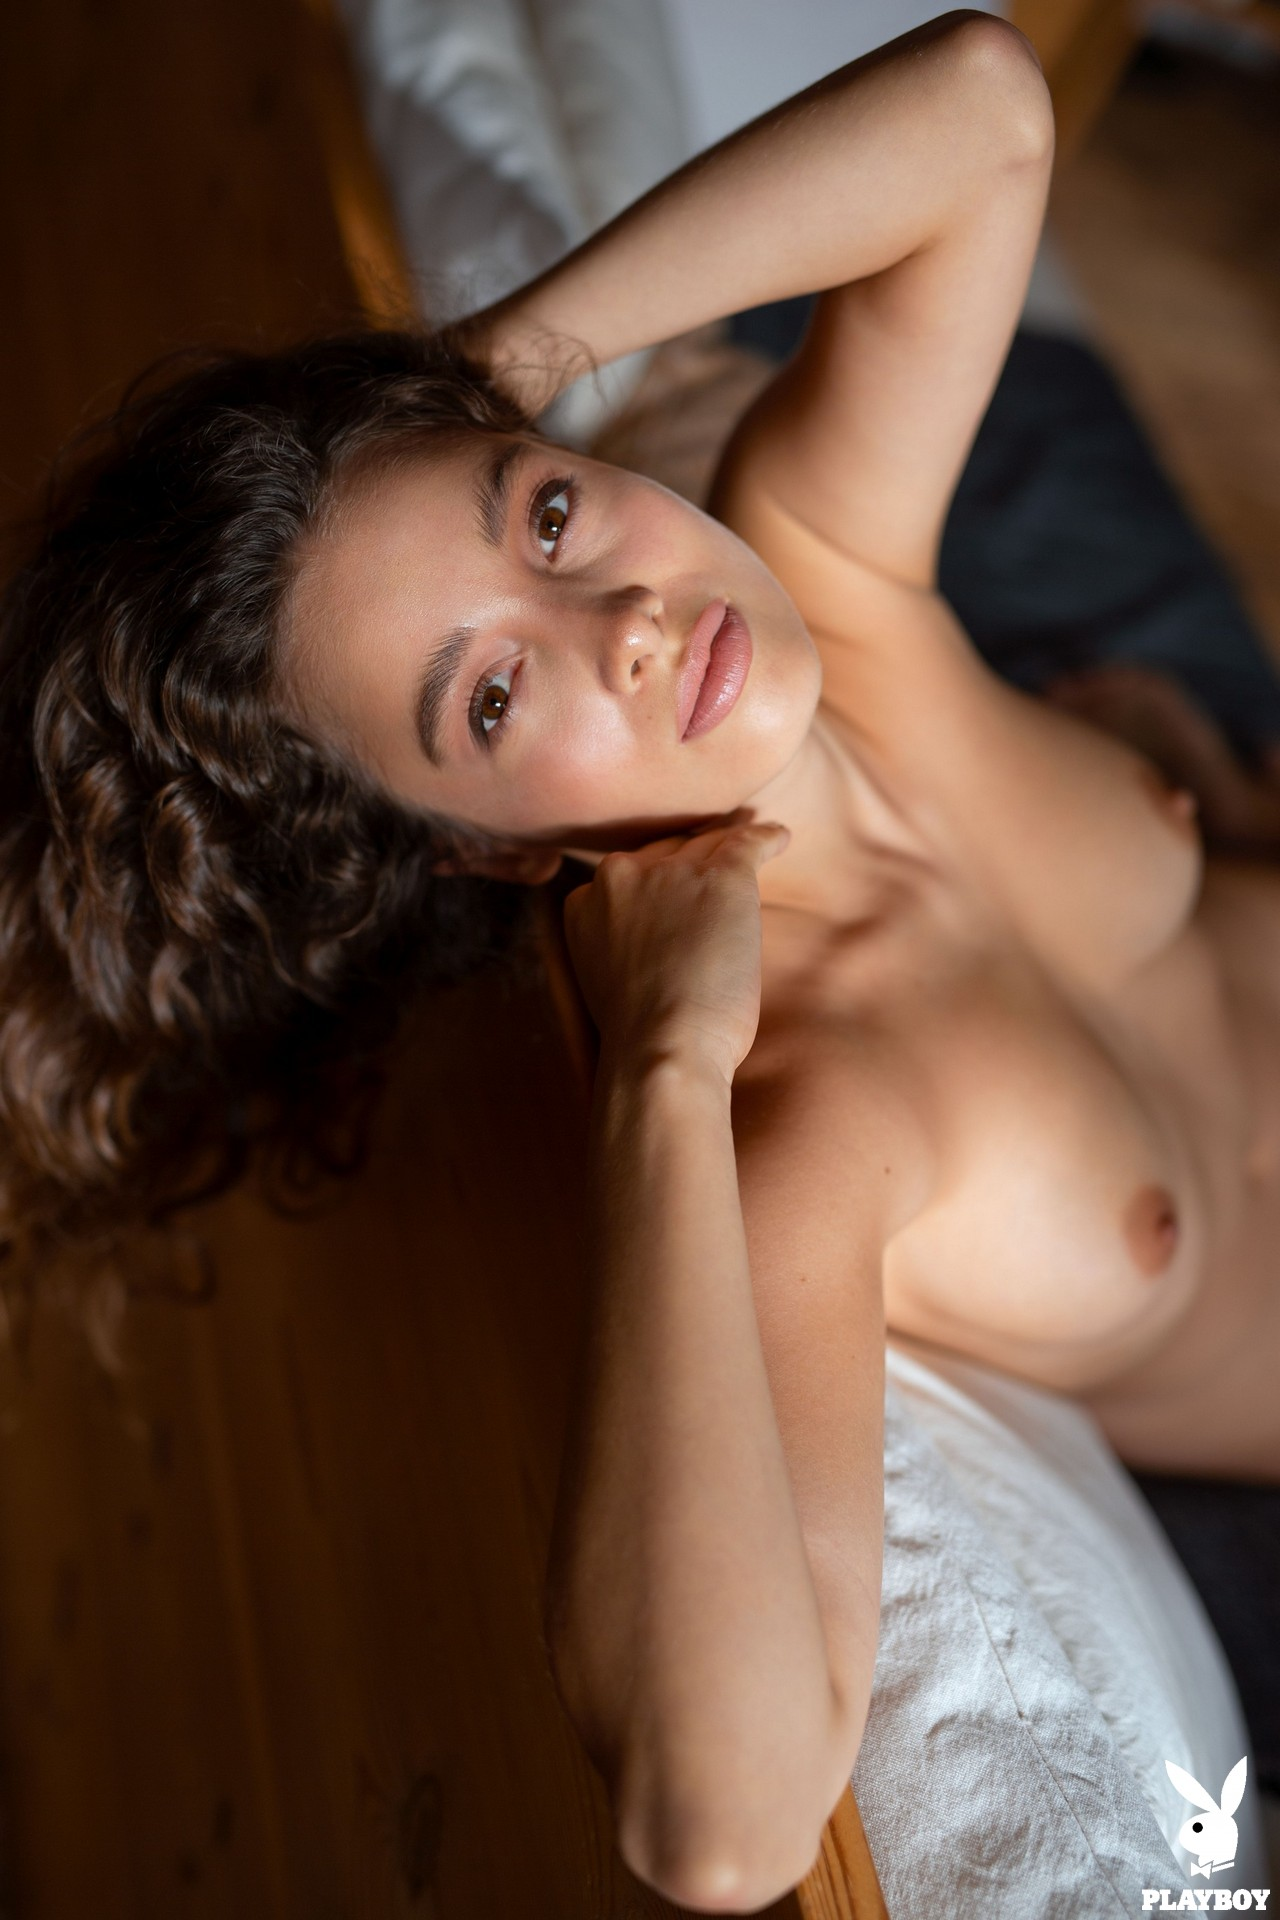 Calypso Muse in Sweet Comforts - Playboy Plus 22